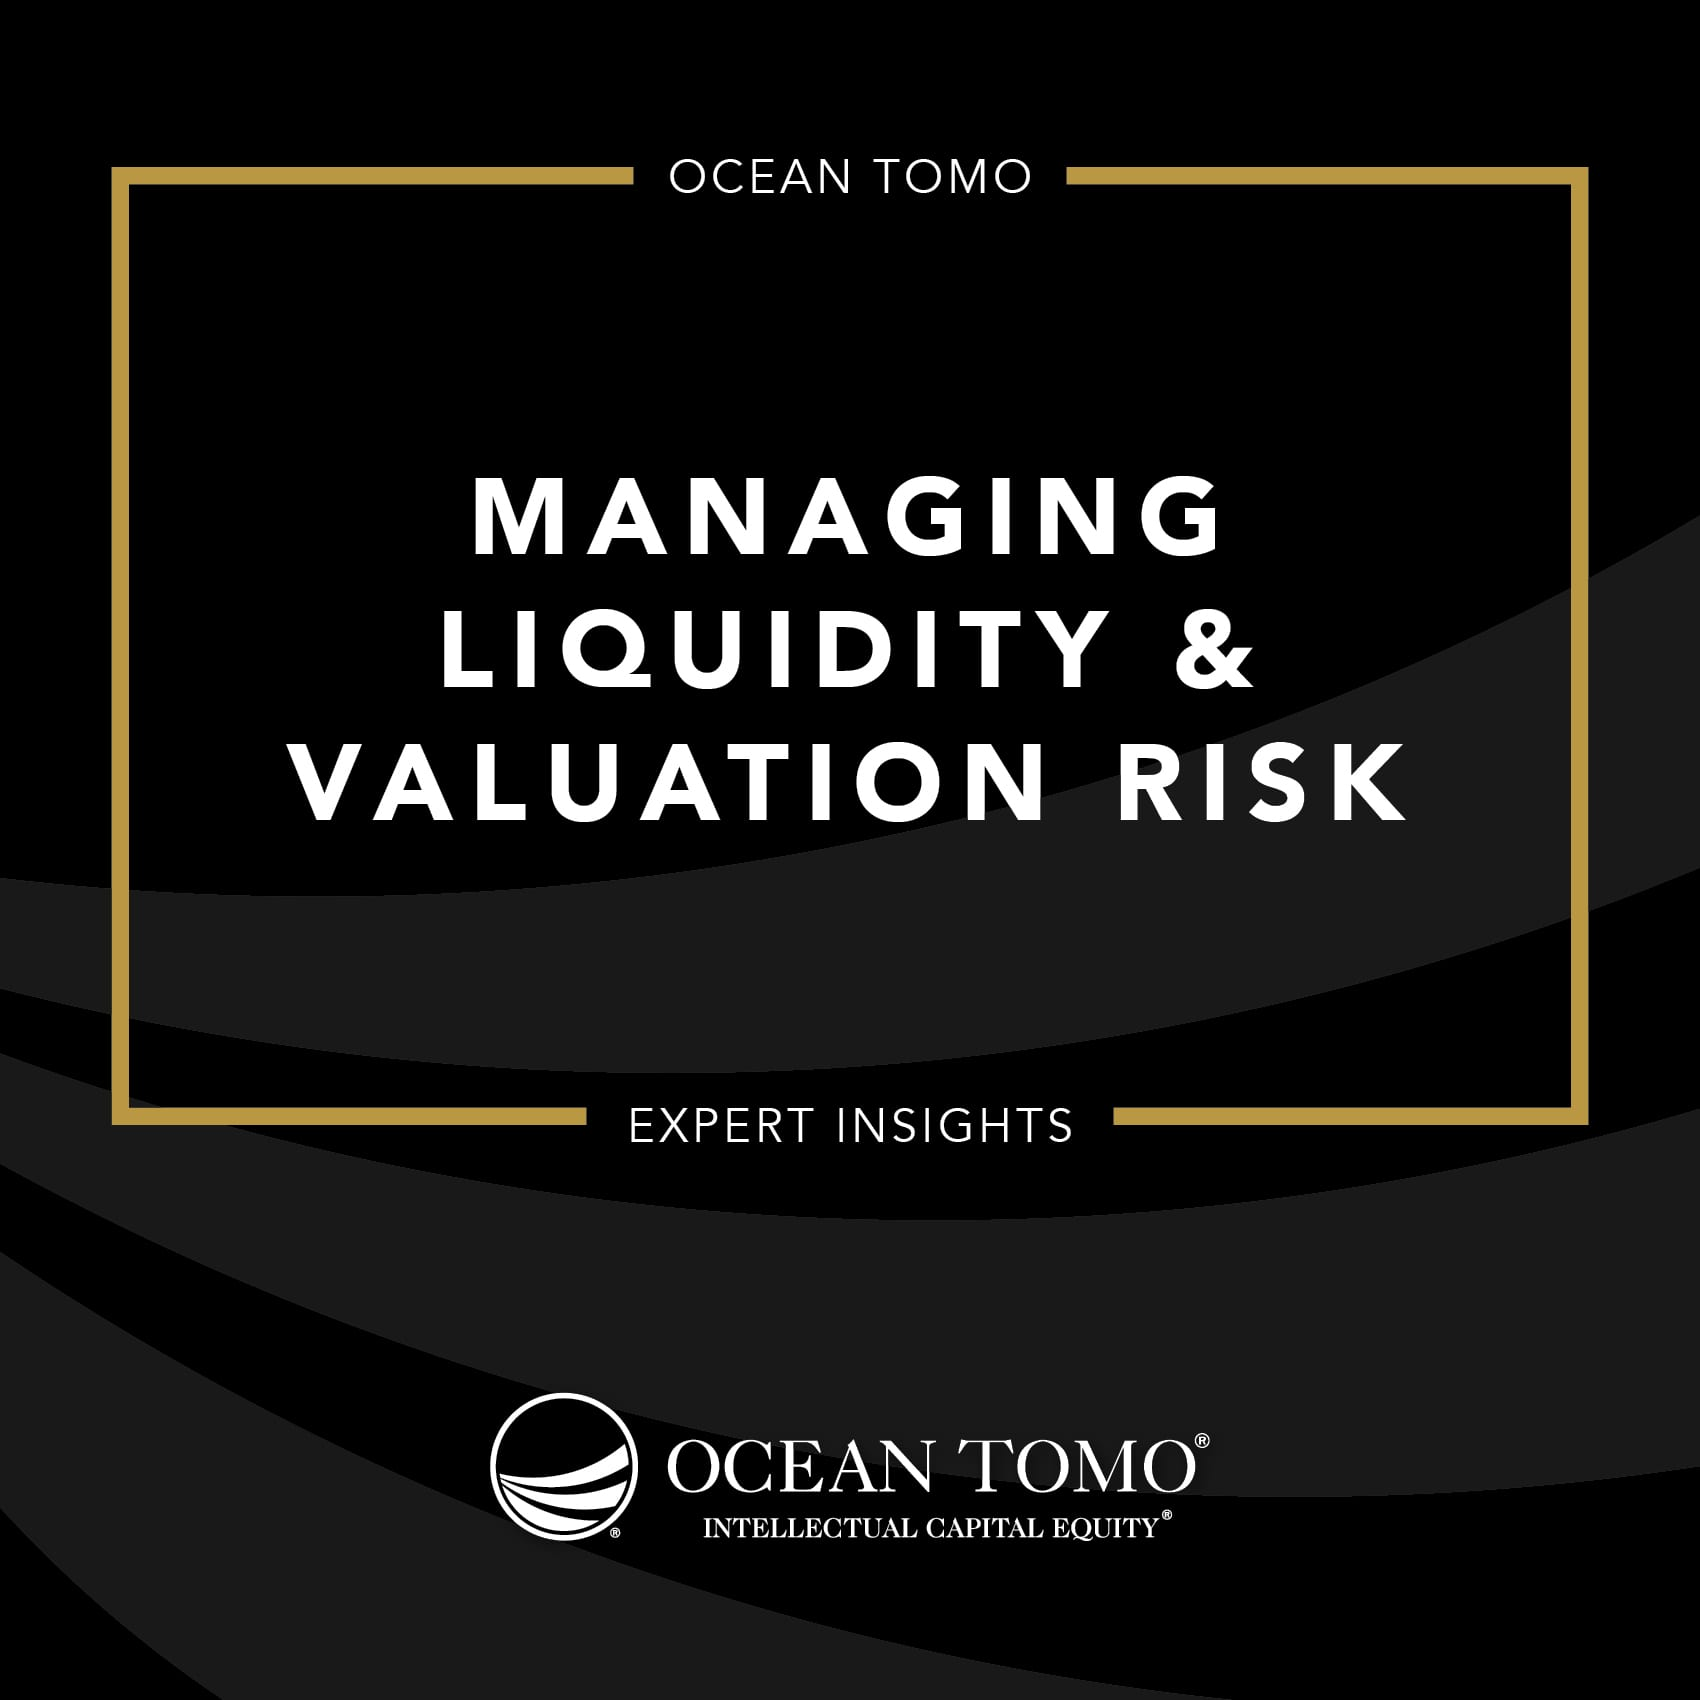 Liquidity and Valuation Risk Considerations for Asset Managers - Ocean Tomo